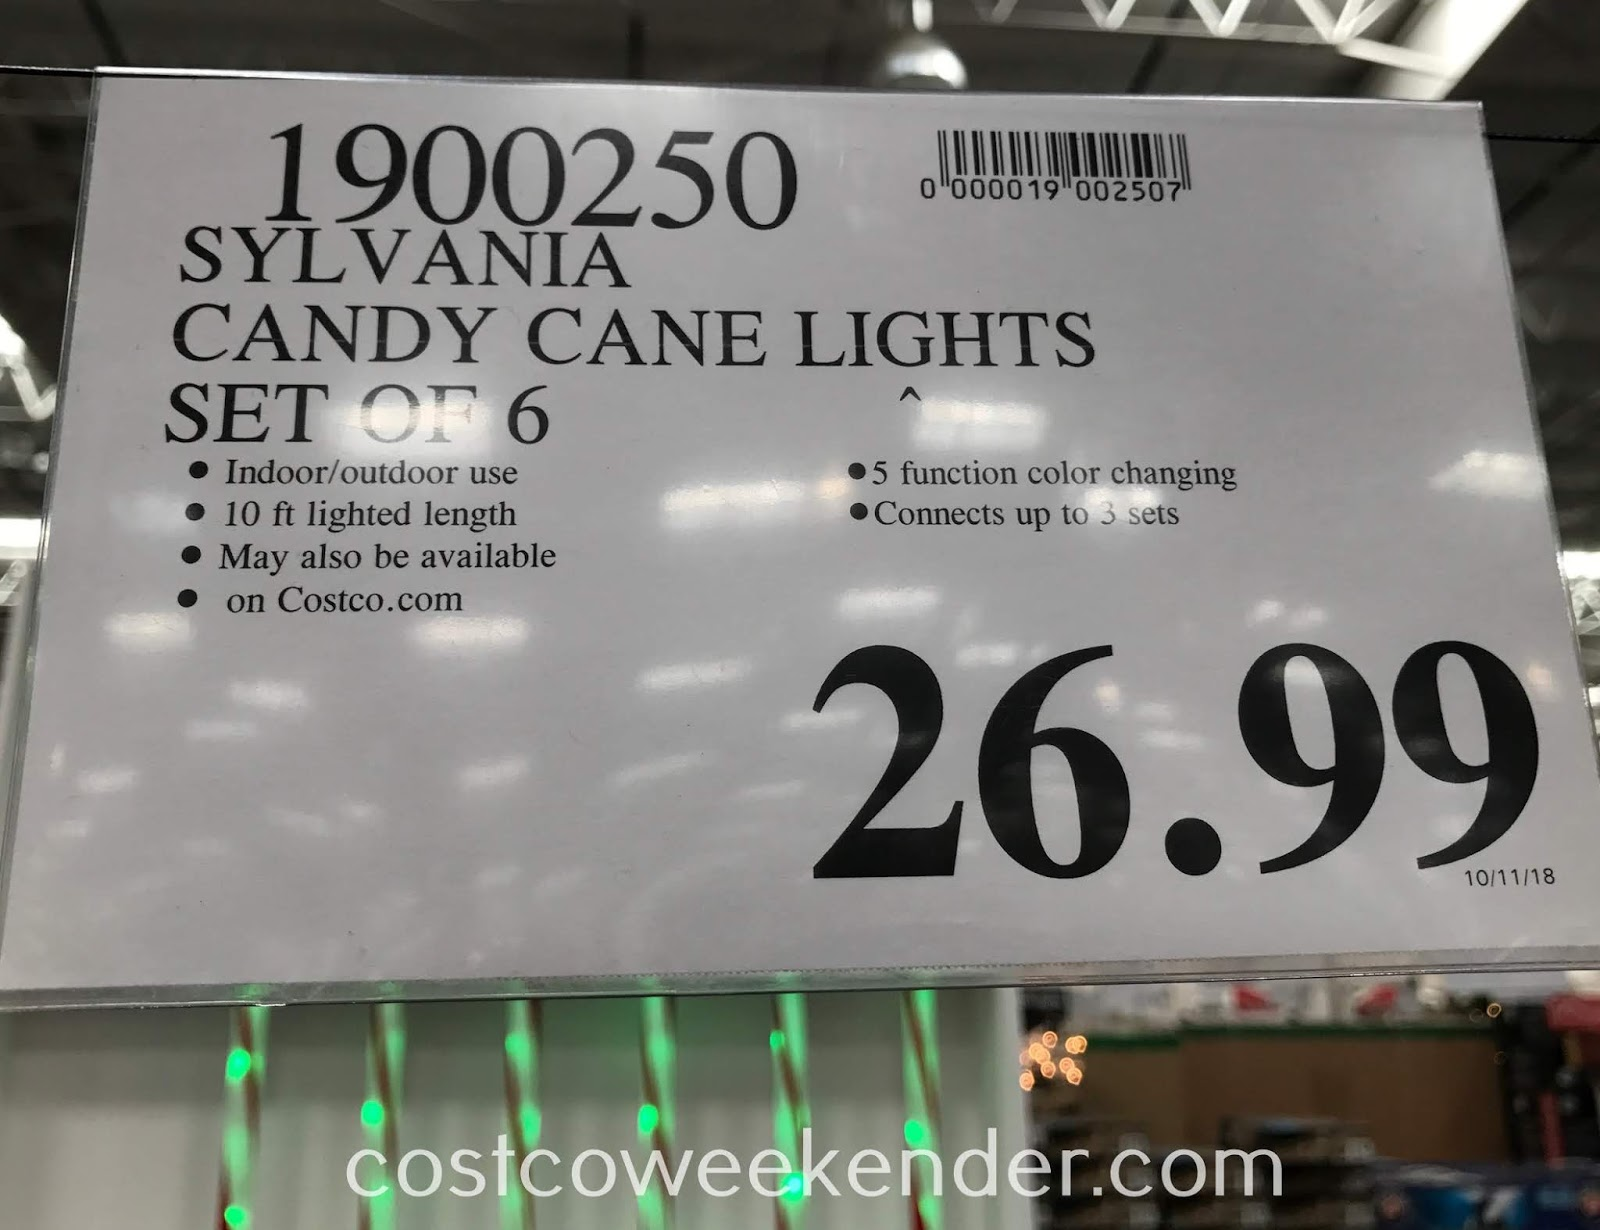 Deal for Sylvania Color Changing LED Candy Cane Lights at Costco